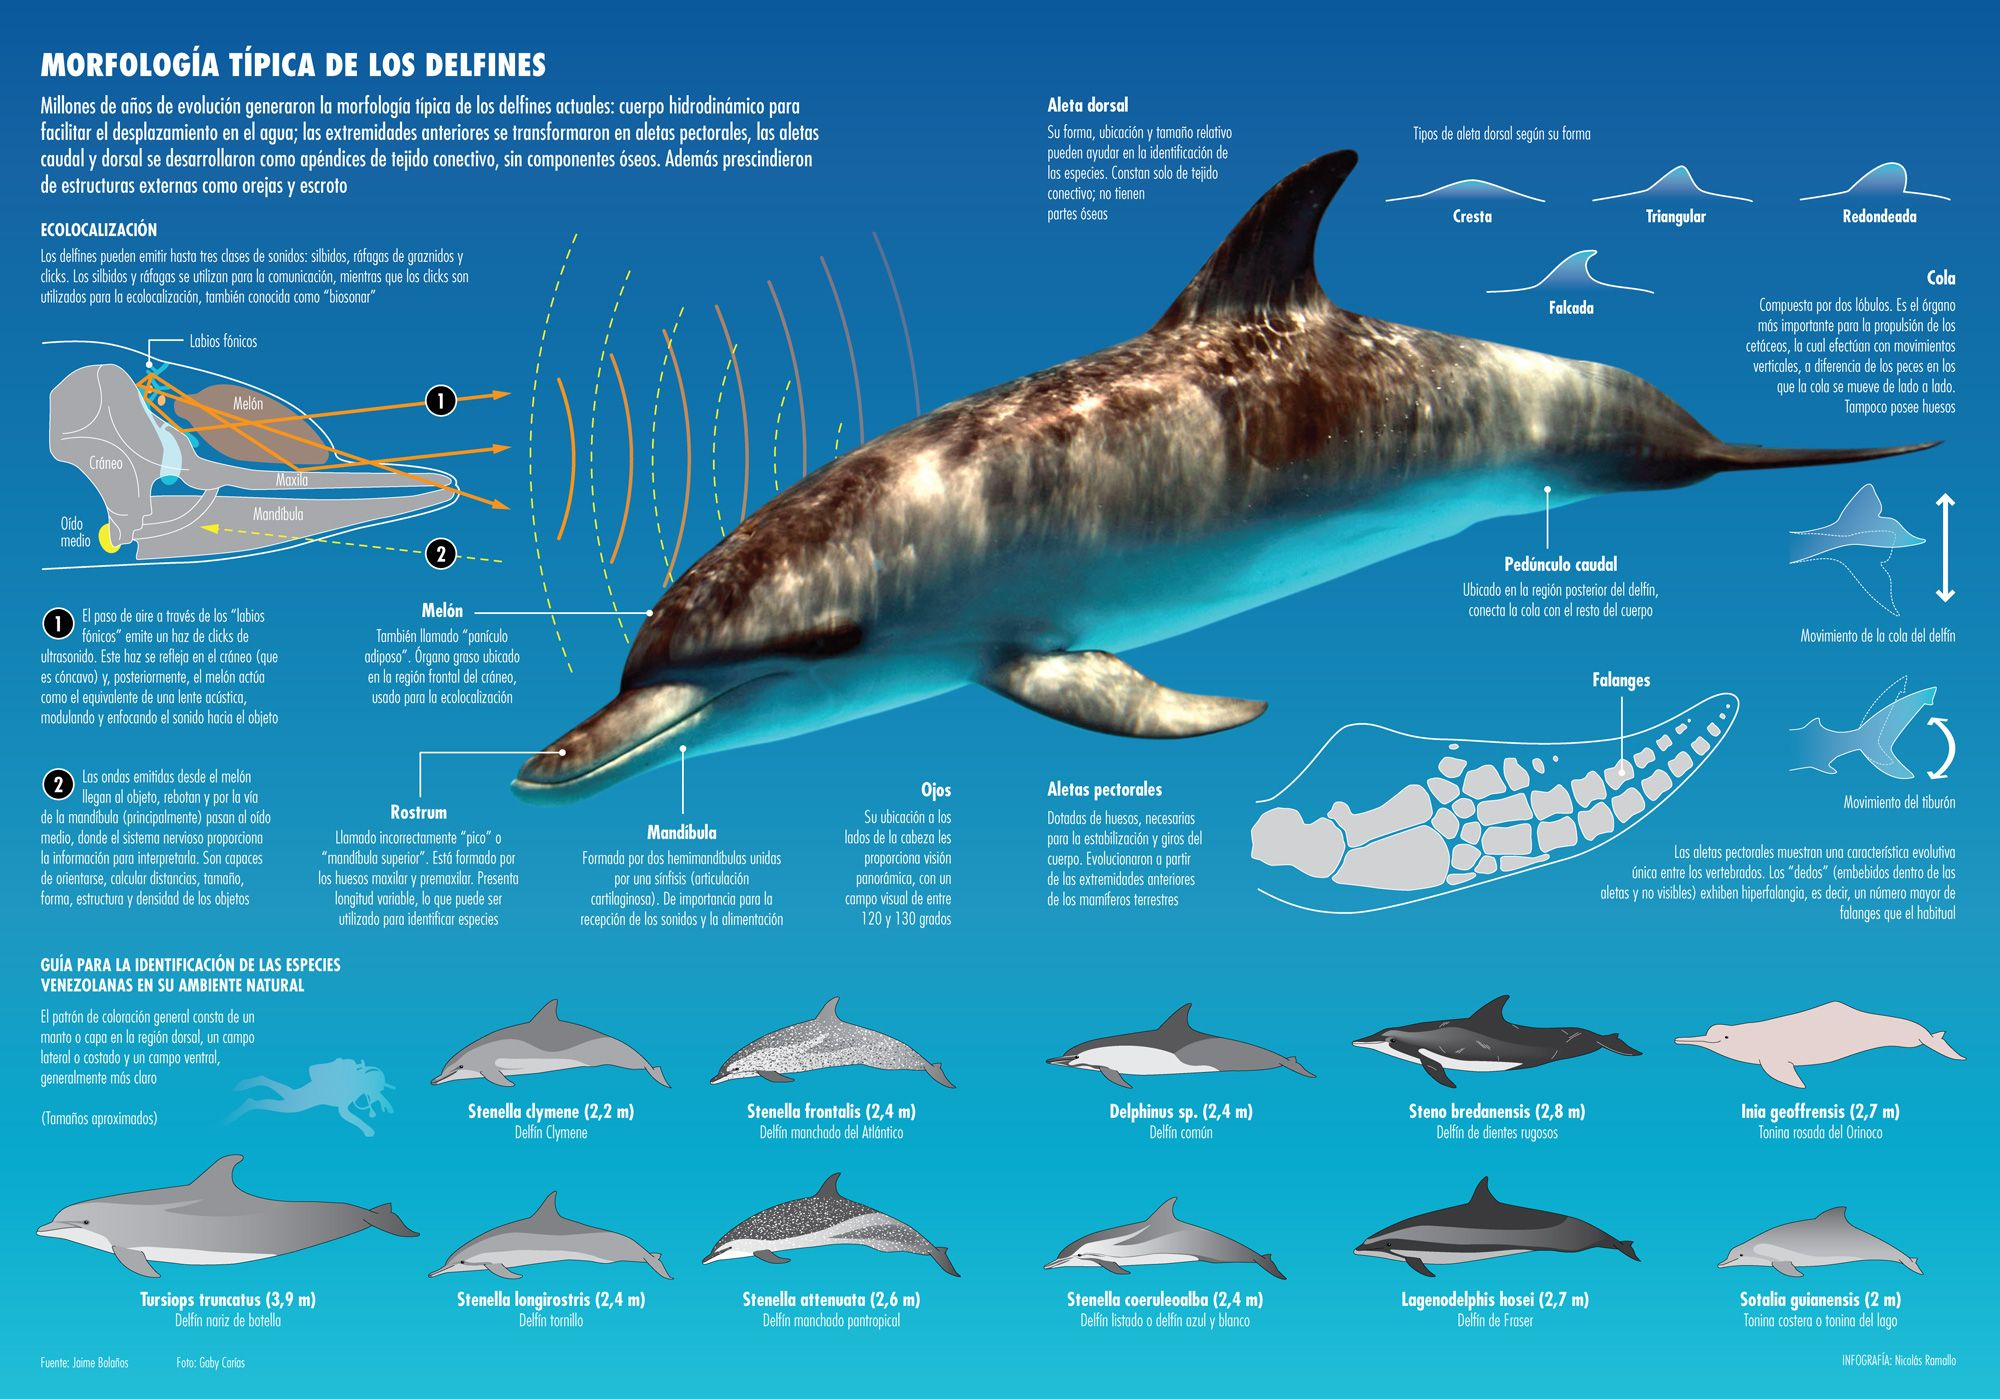 Morfología De Los Delfines Visual Ly Fish Infographic Science And Nature Animal Illustration